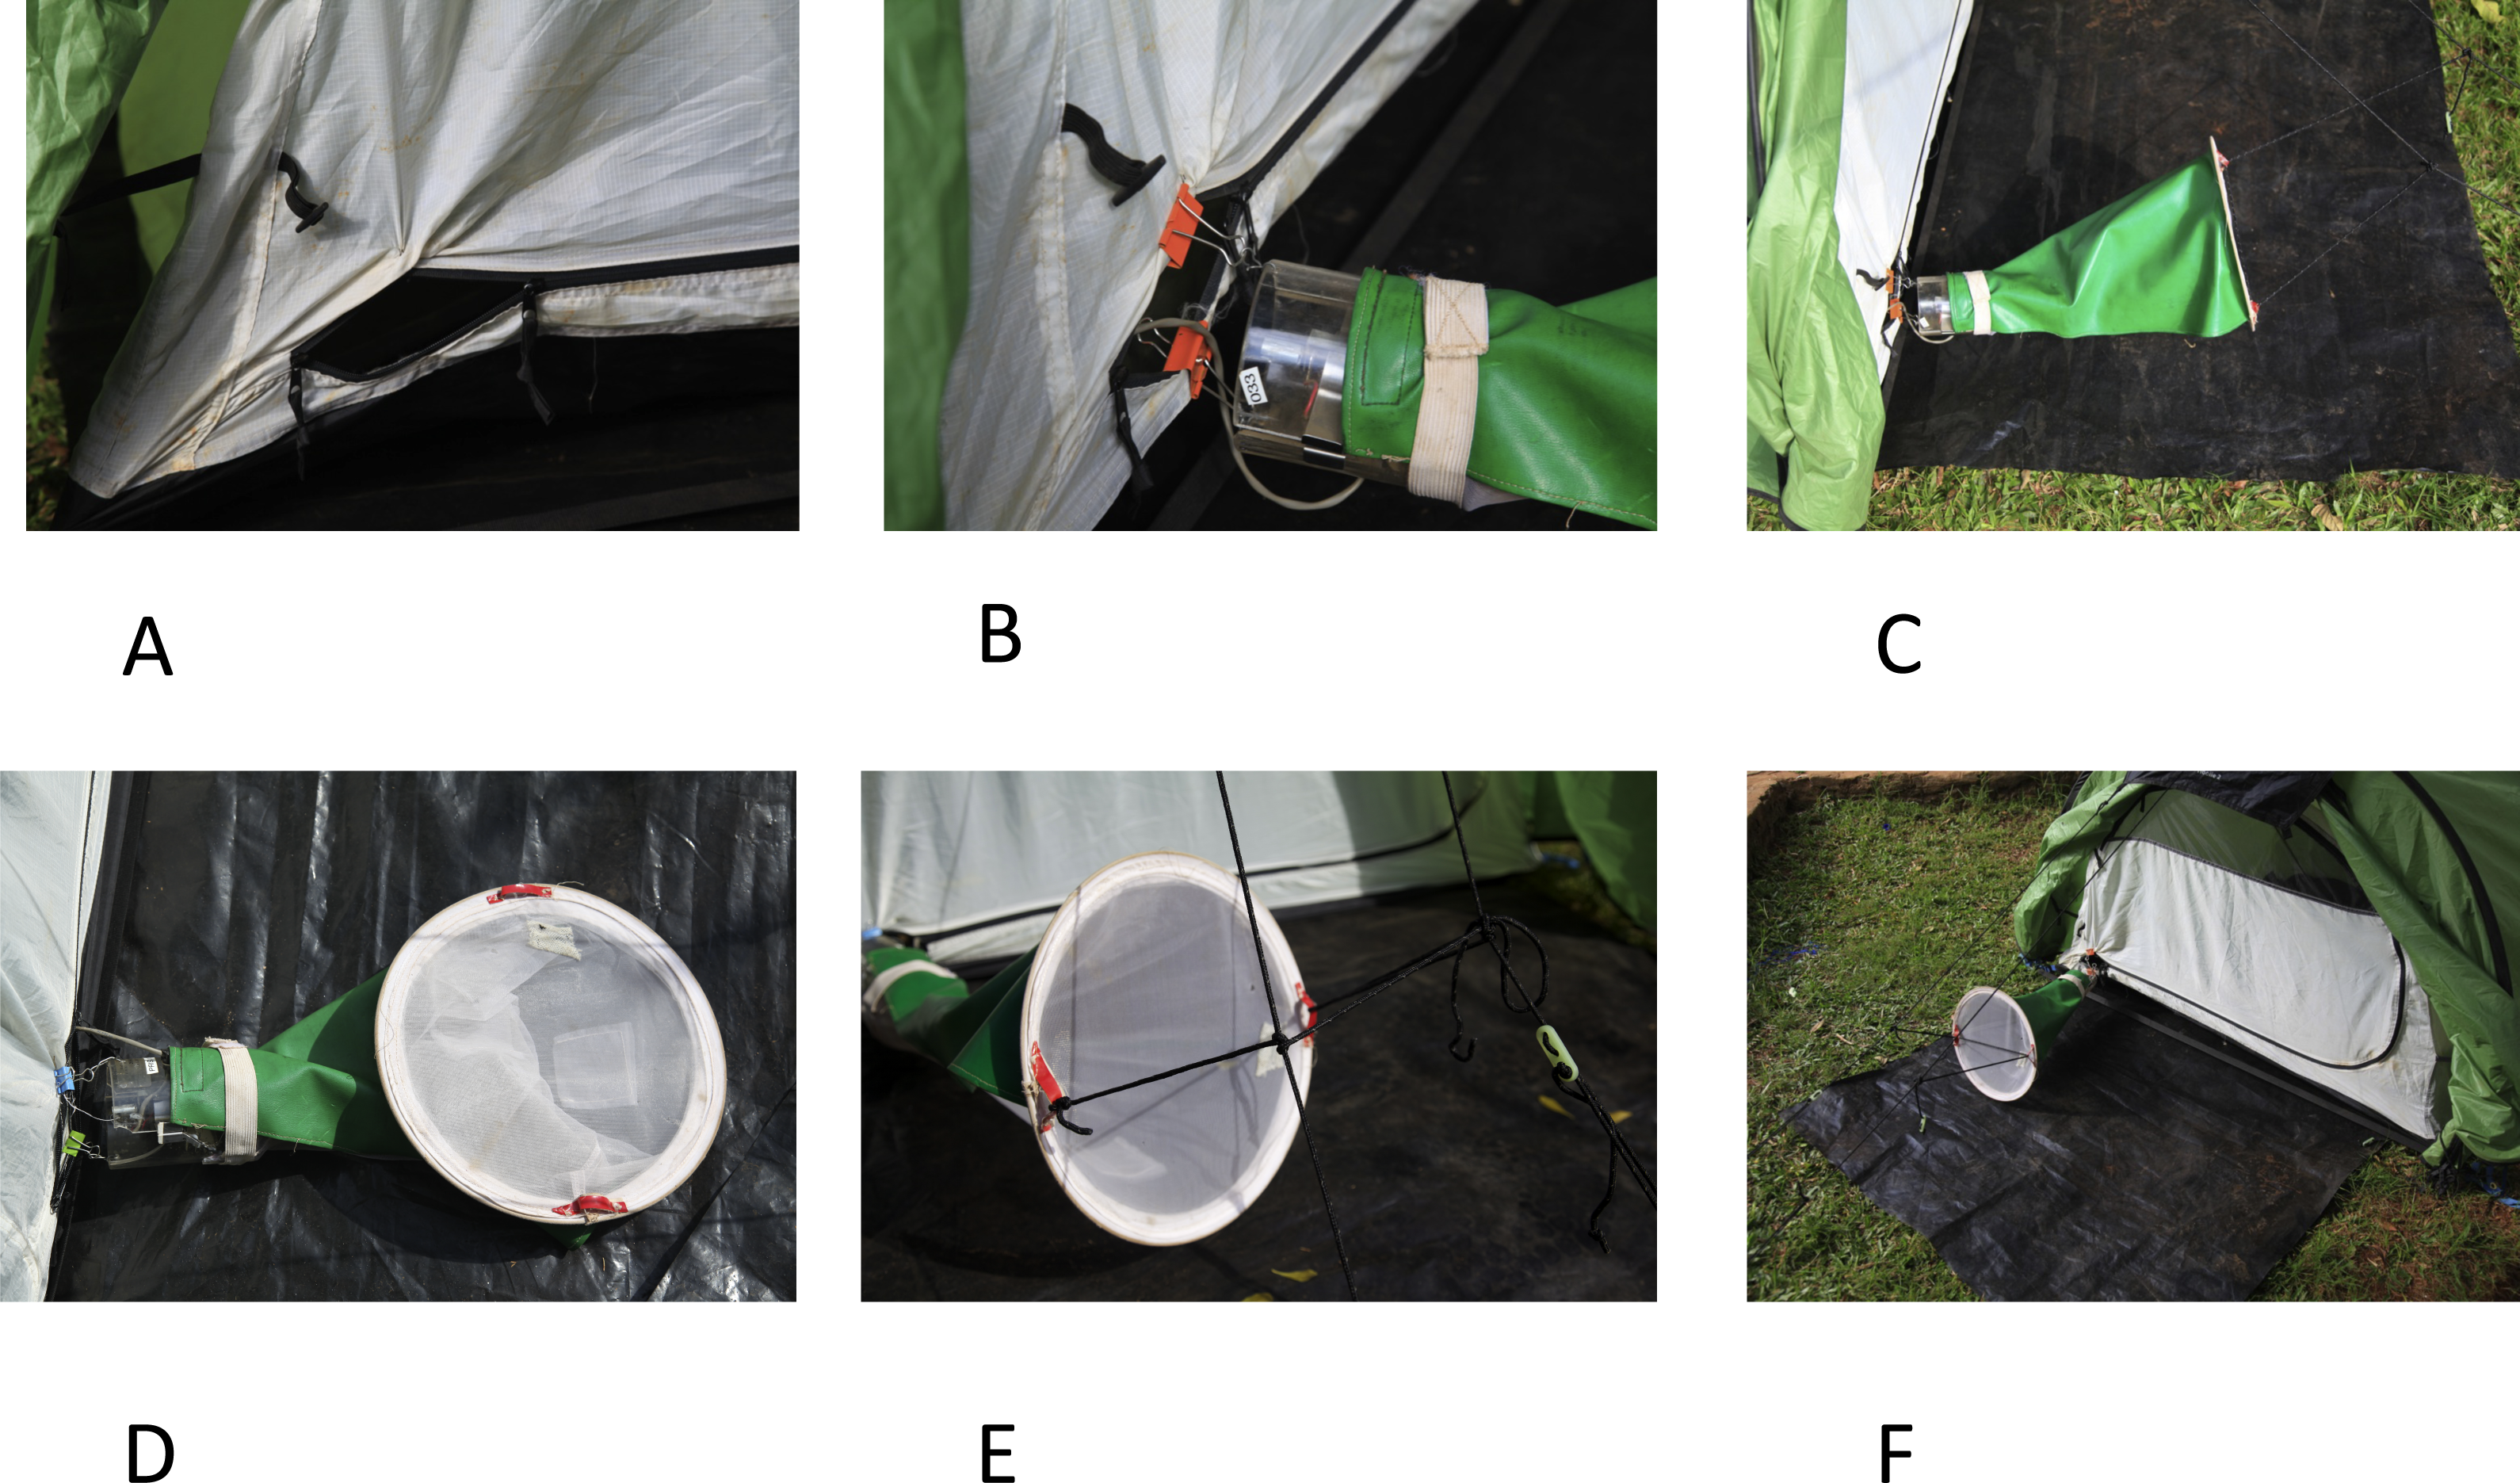 Download full-size image & The Furvela tent-trap Mk 1.1 for the collection of outdoor biting ...